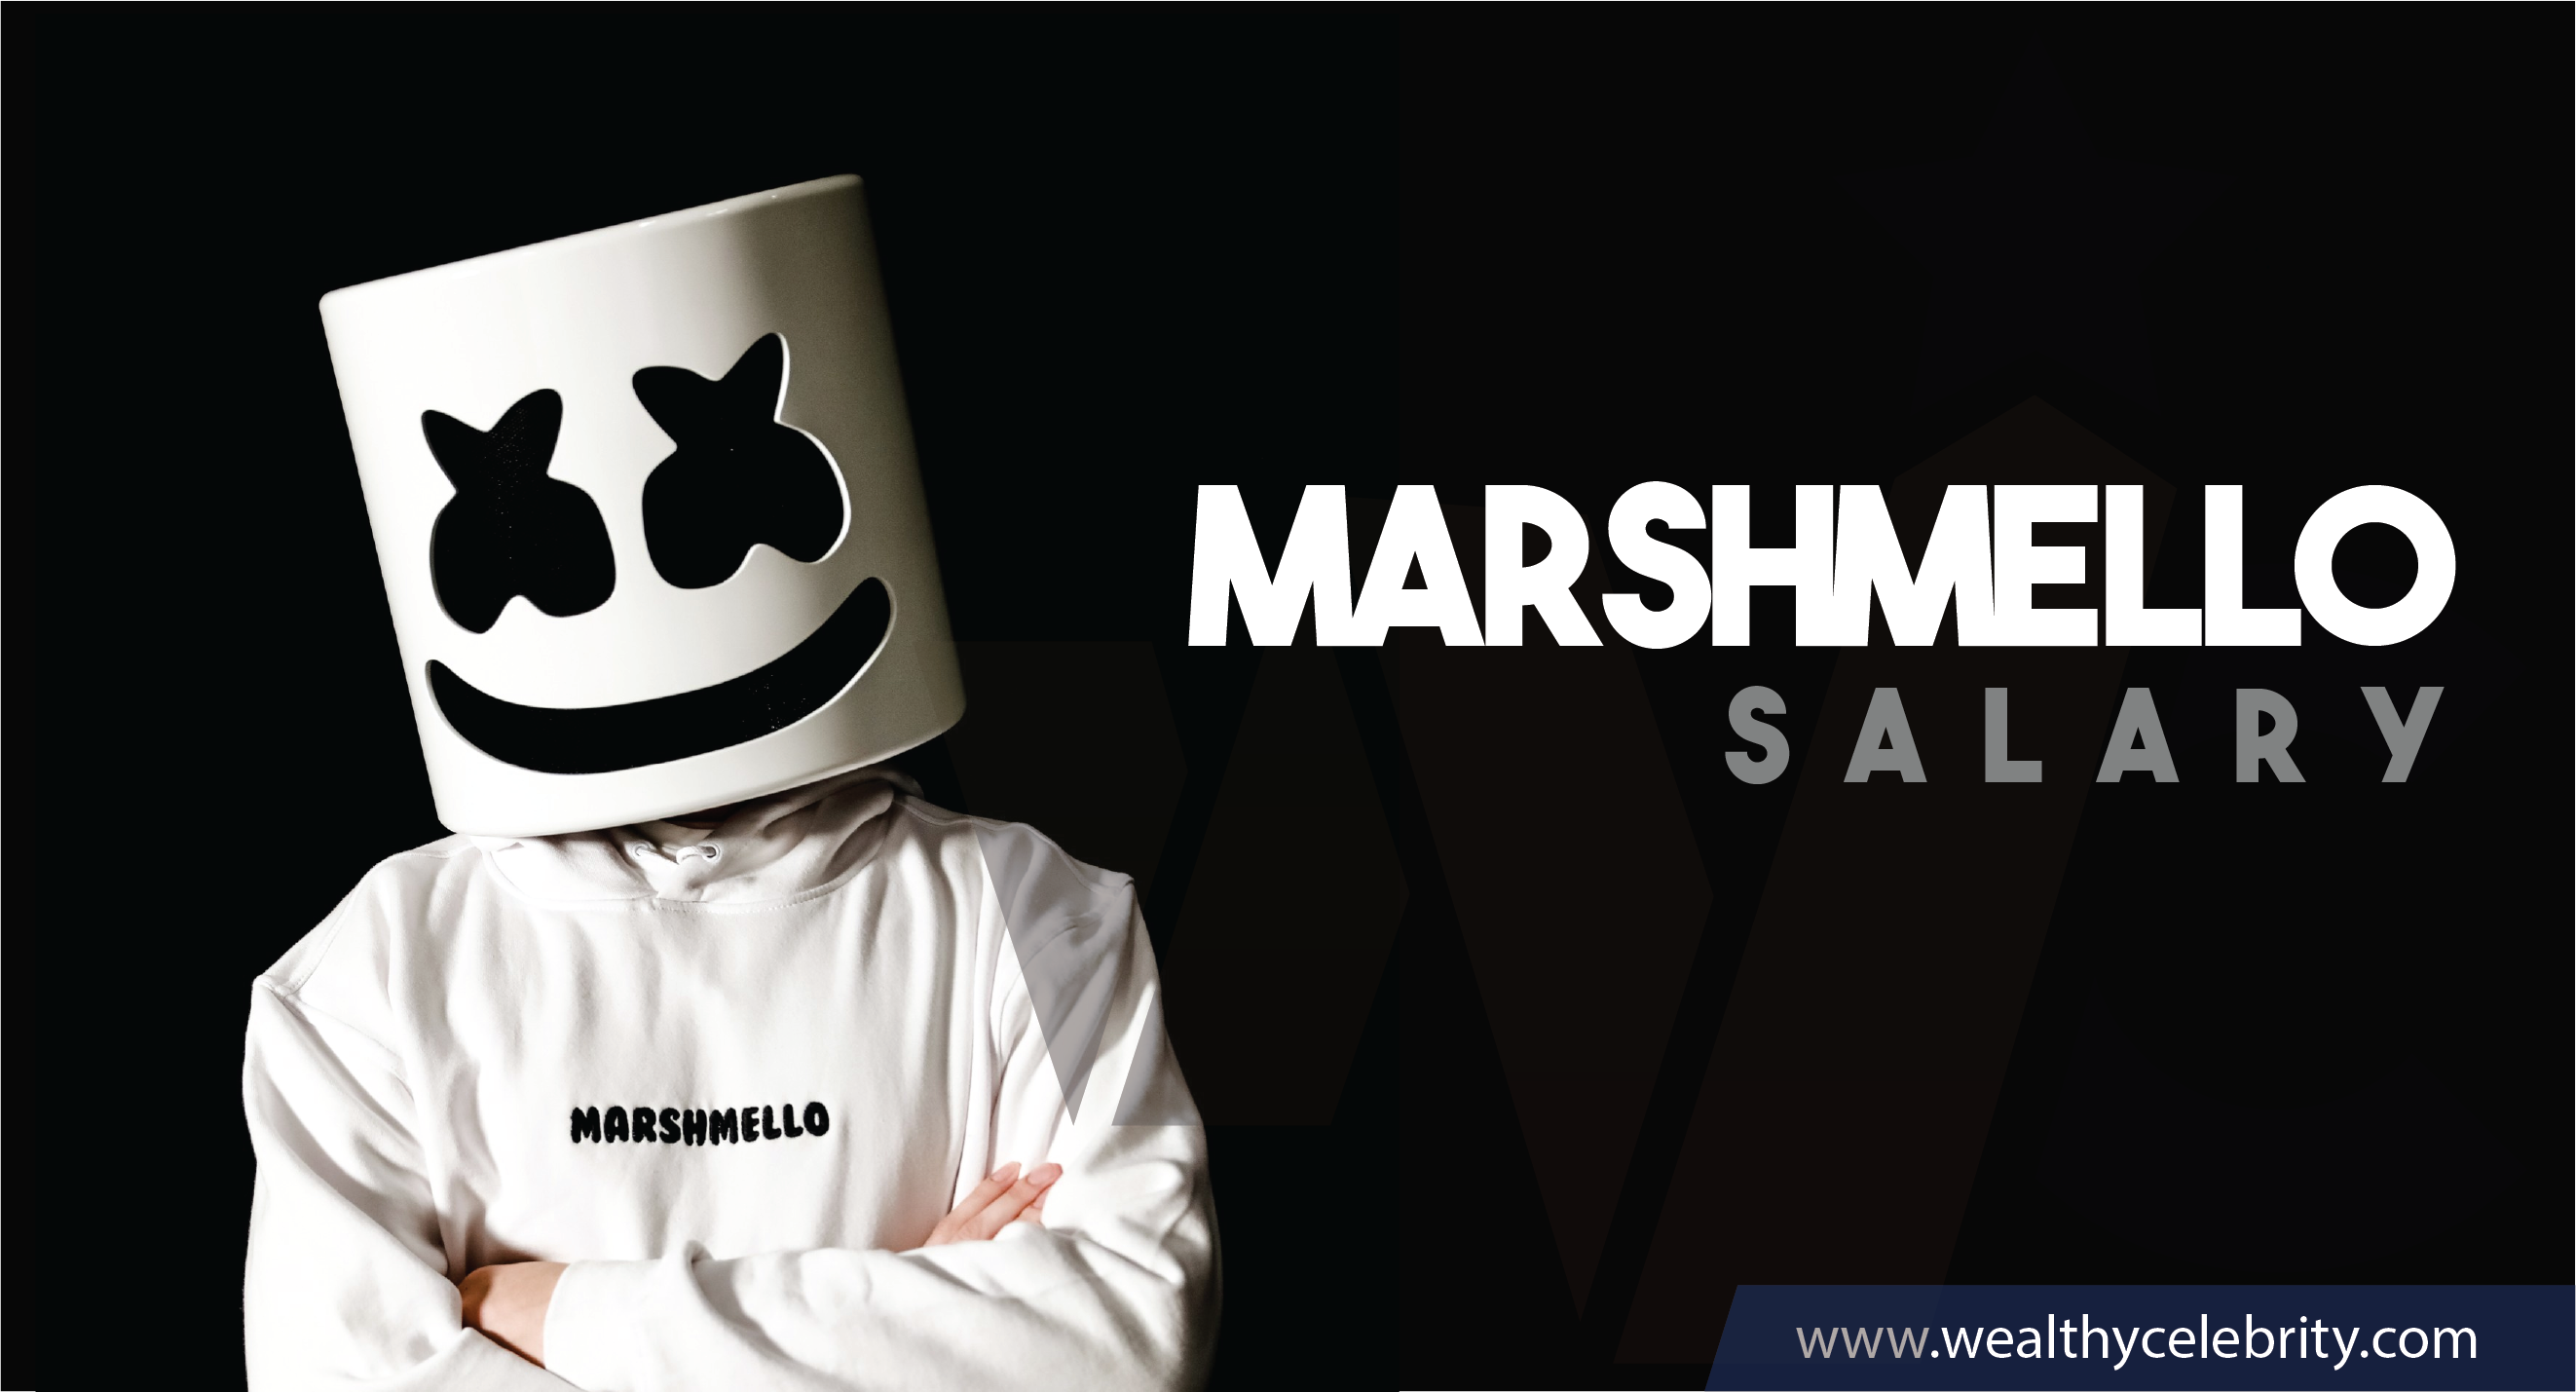 Marshmello DJ - Current Salary Net Worth